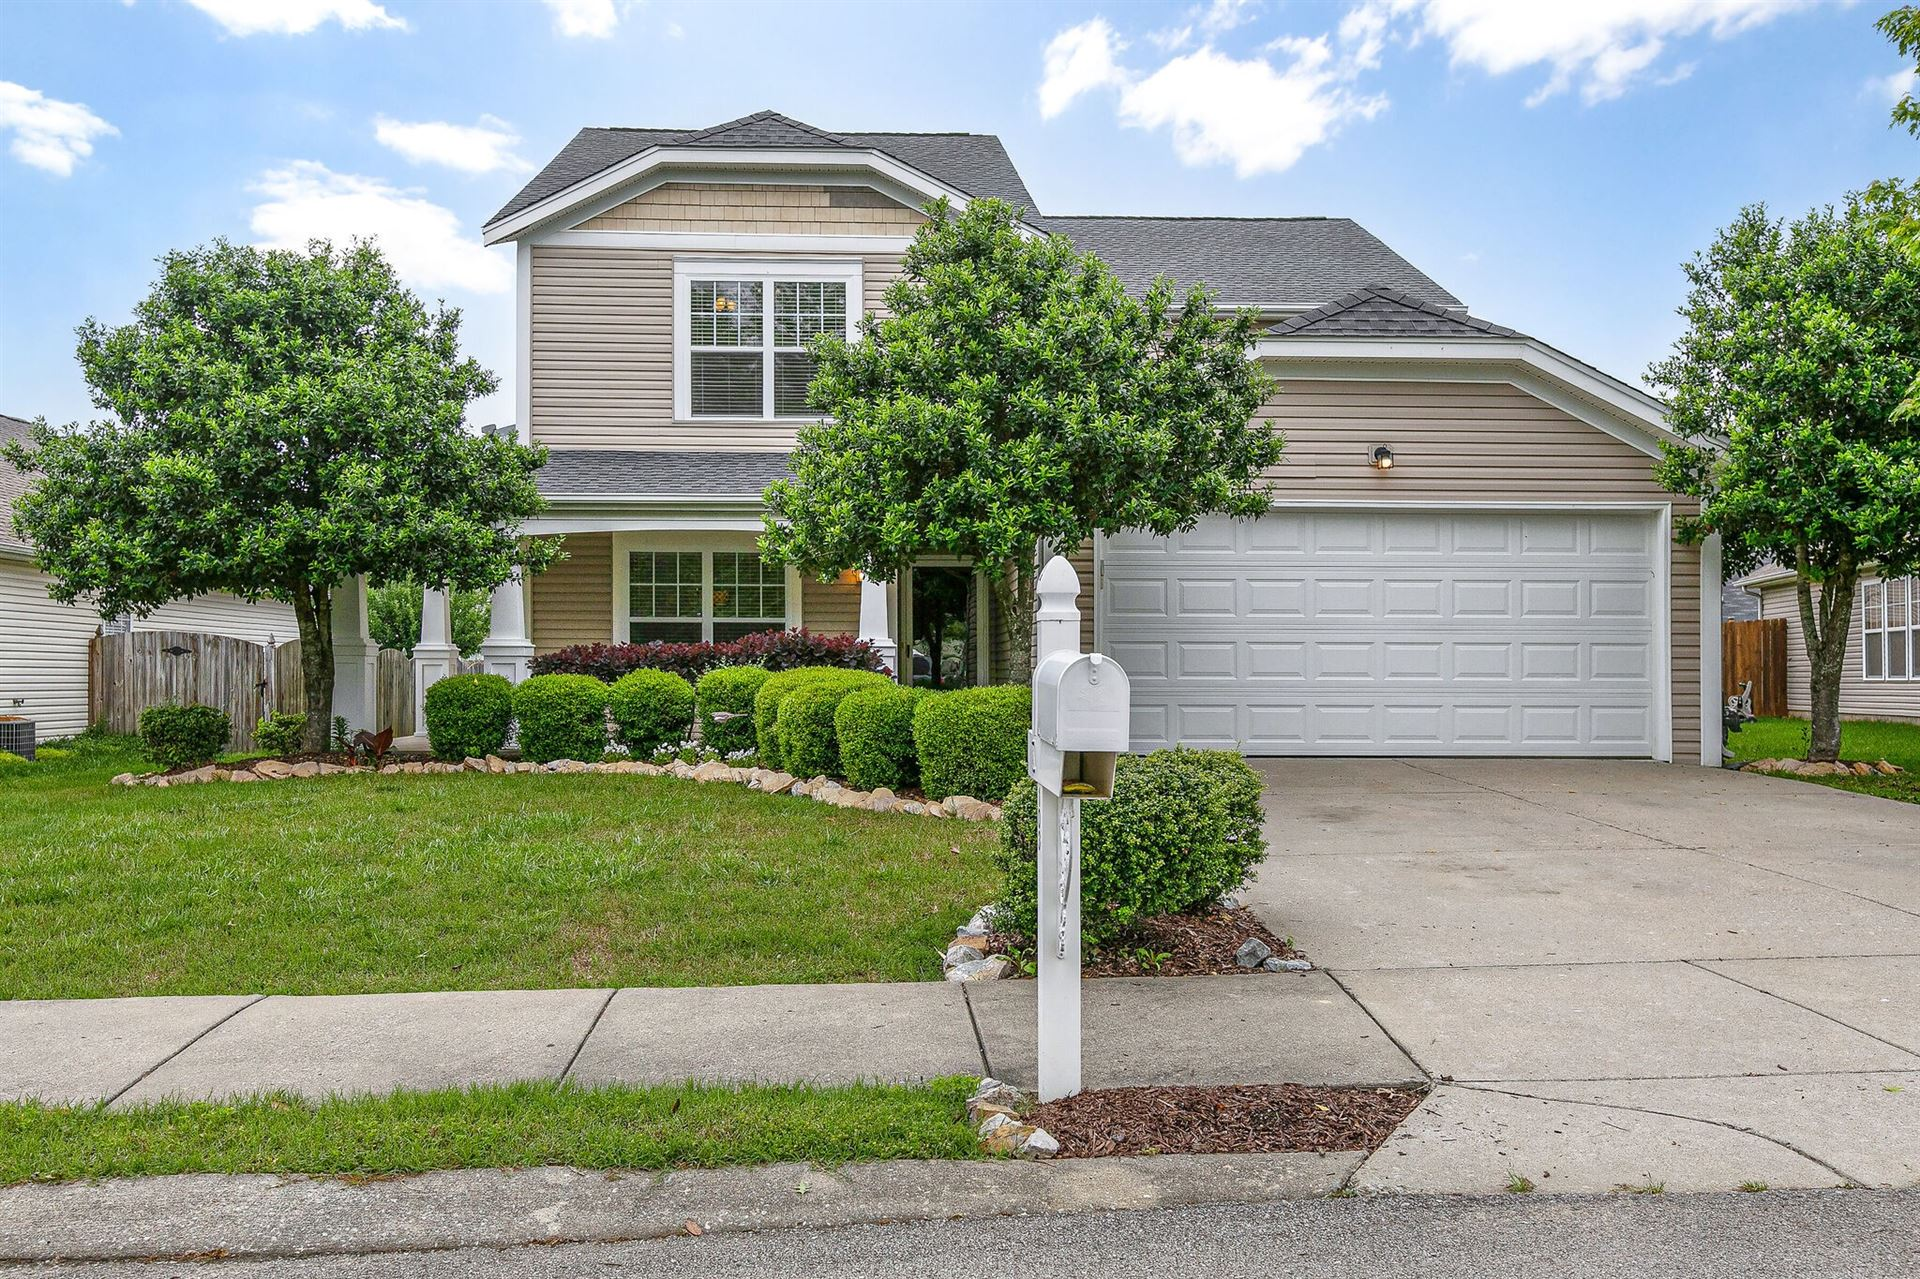 103 Coolmore Ct, Spring Hill, TN 37174 - MLS#: 2252703